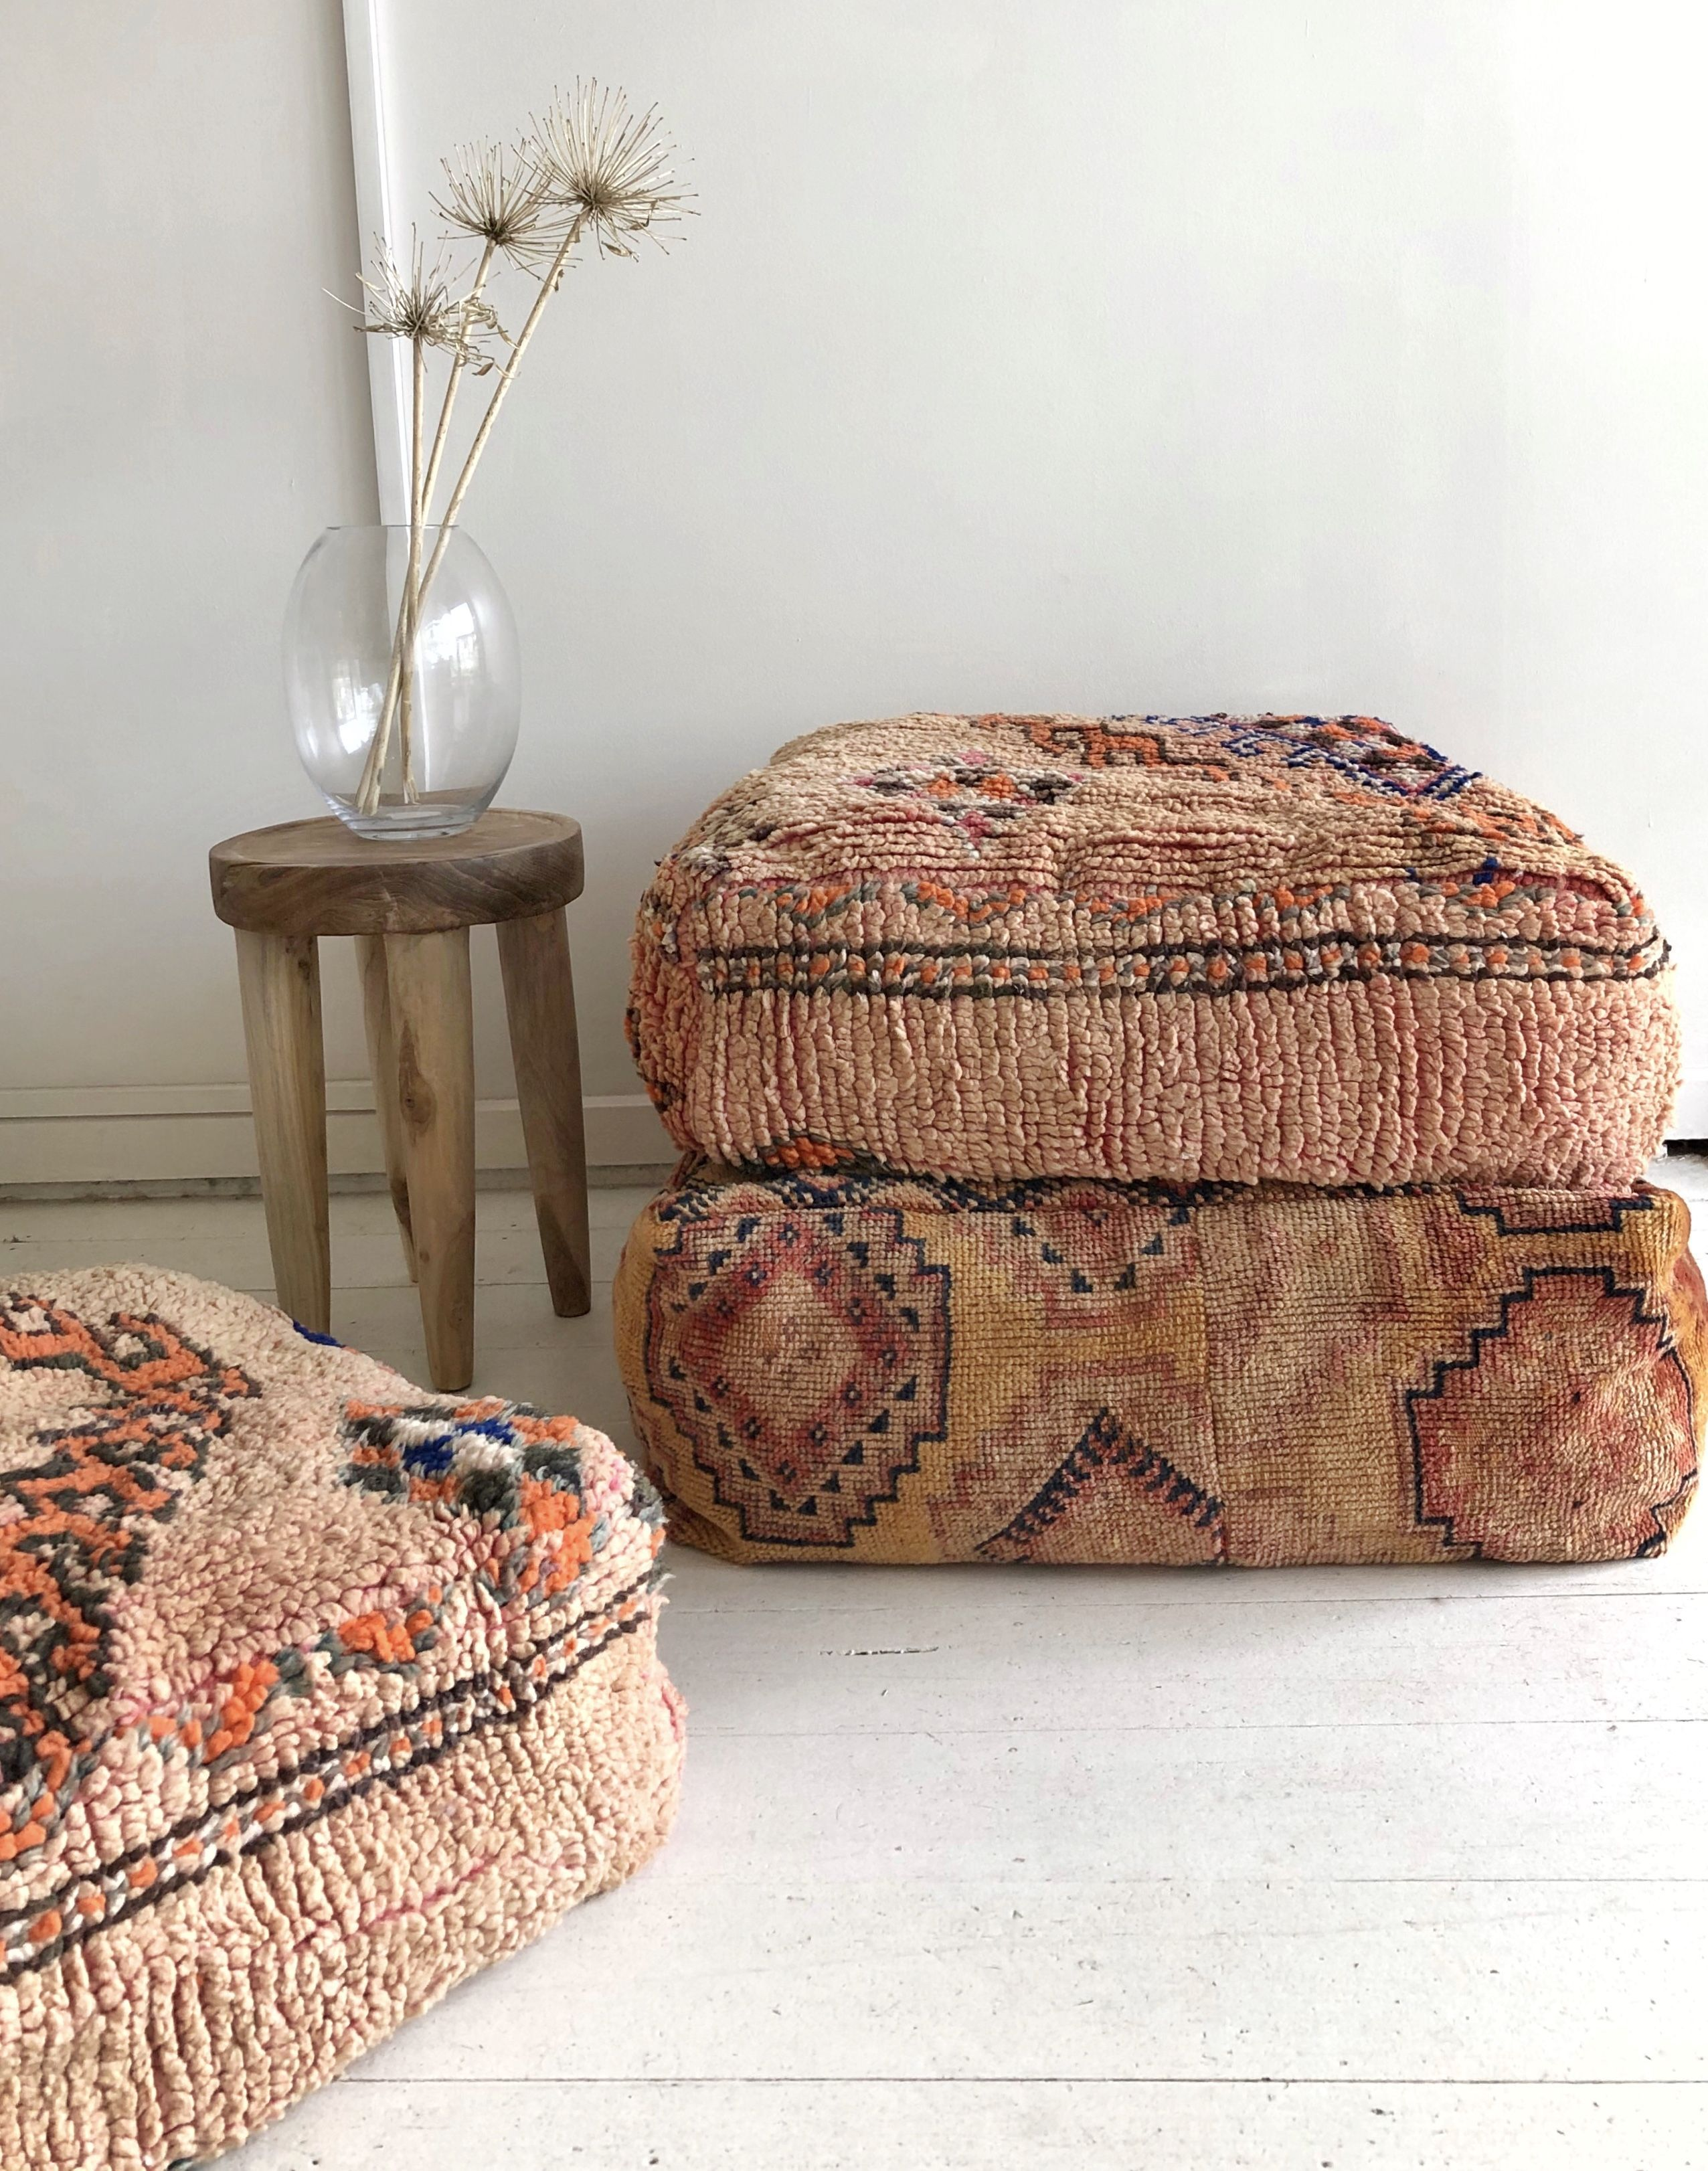 Pin By Isadora Bayma On Home Stuff In 2020 Moroccan Floor Cushions Boho Floor Pillows Moroccan Floor Pillows